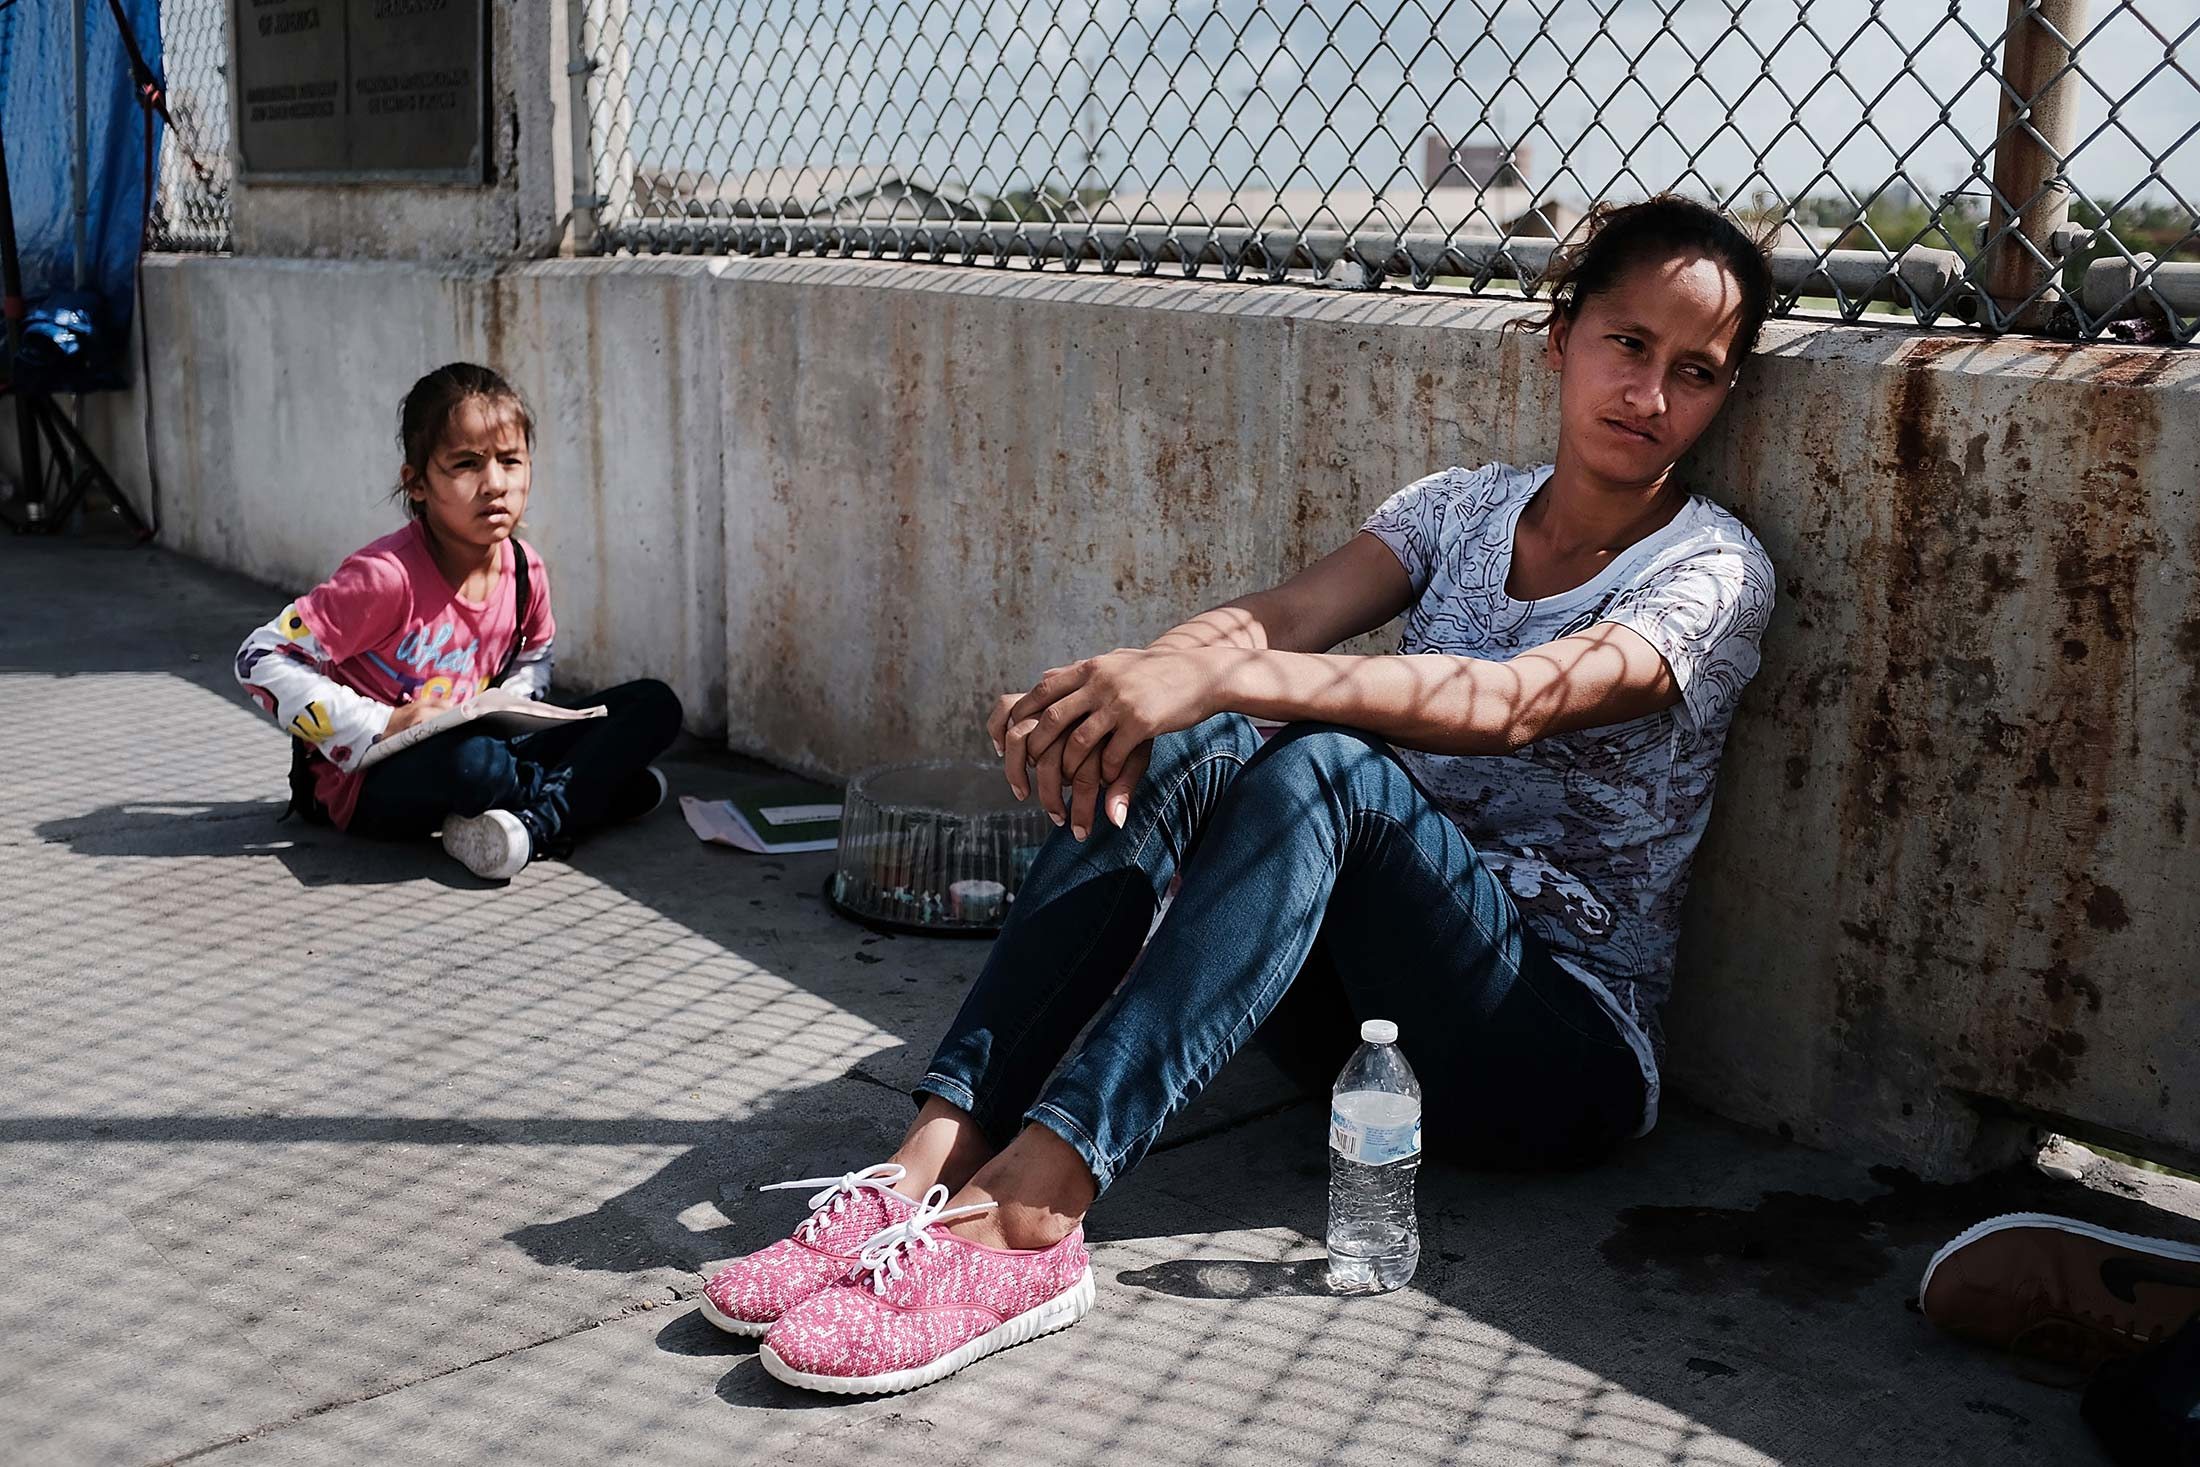 Migrant woman and child sitting on concrete bridge.